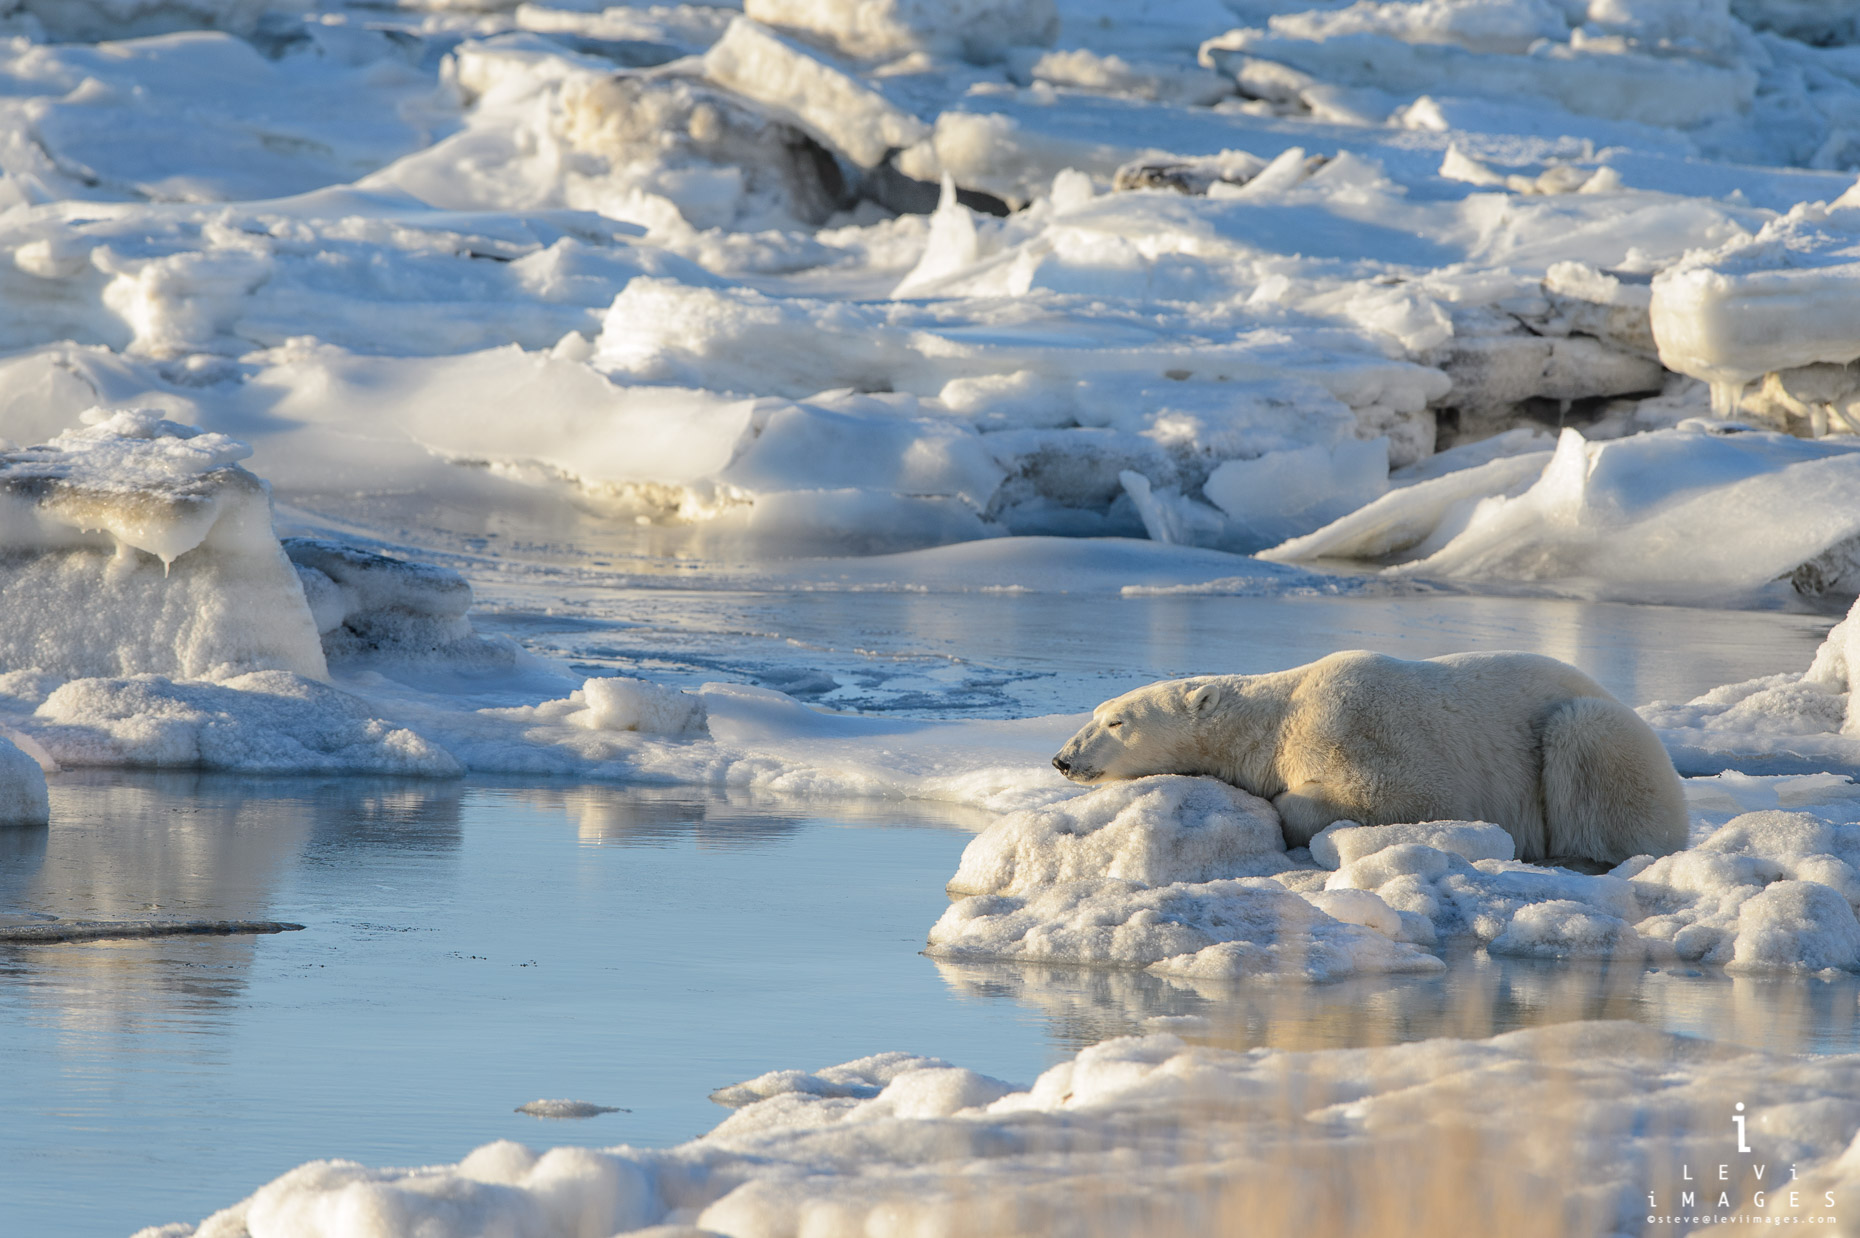 Polar bear (Ursus maritimus) rests on ice at sea edge. Hudson Bay, Manitoba, Canada